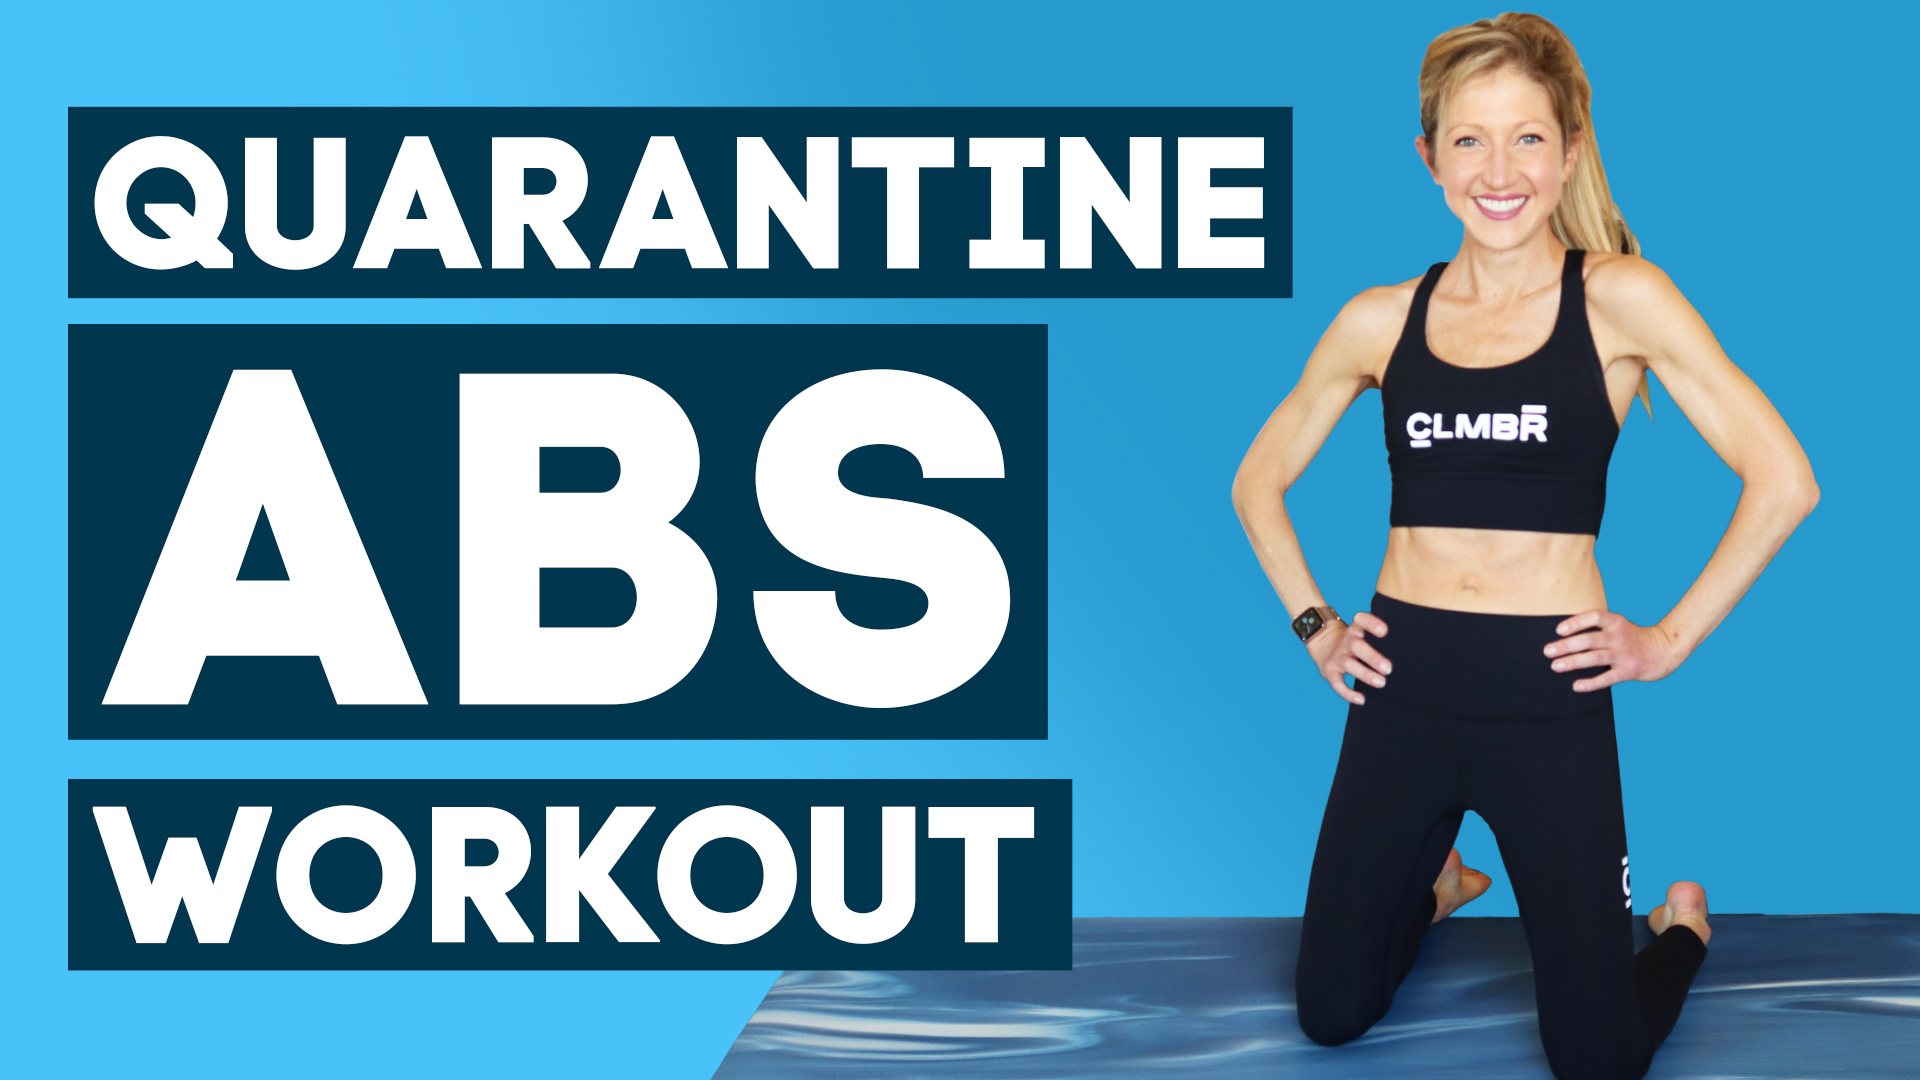 quarantine abs workout